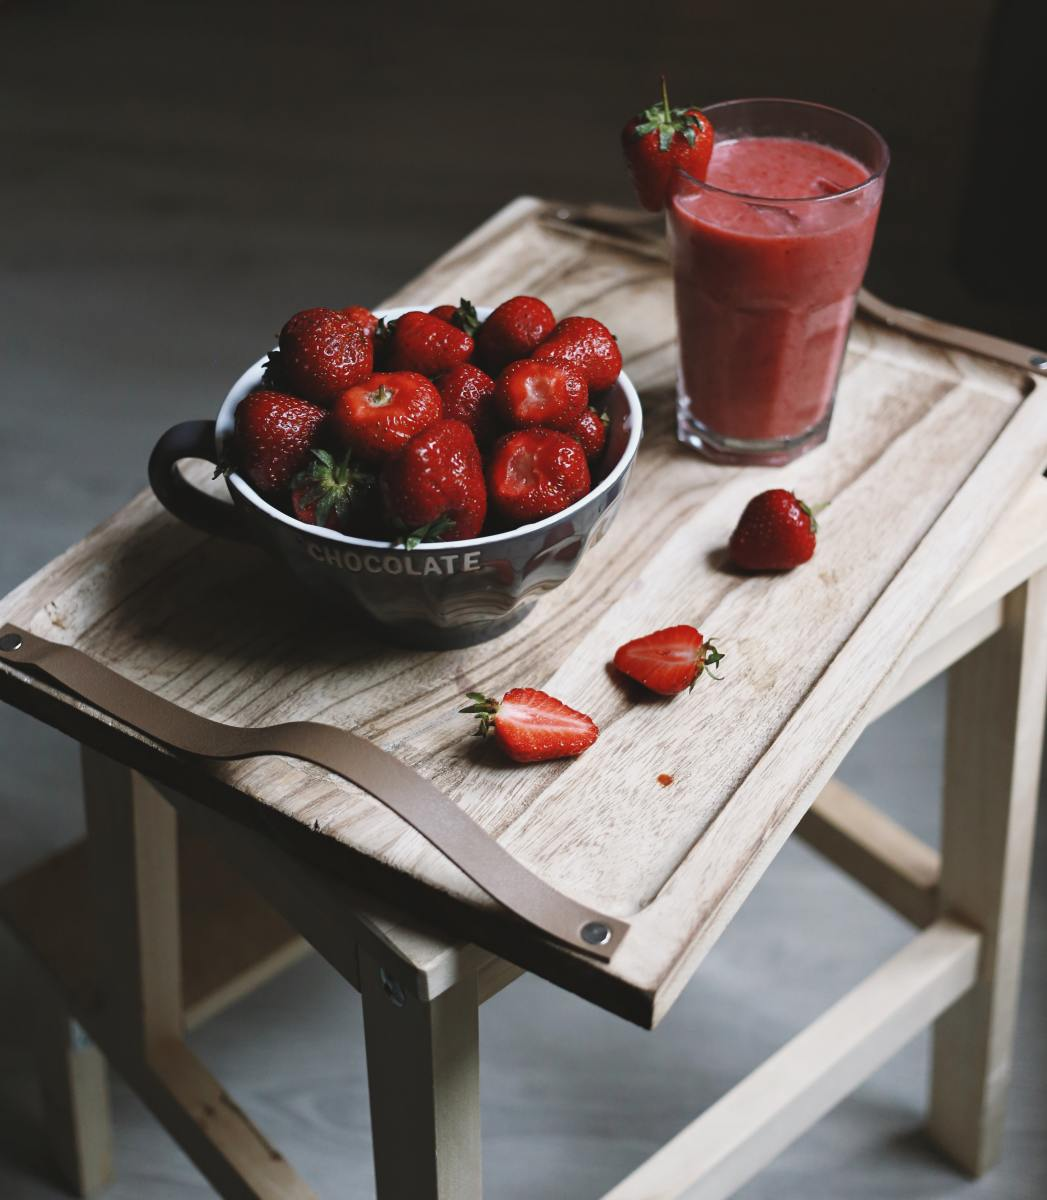 heart-healthy-smoothie